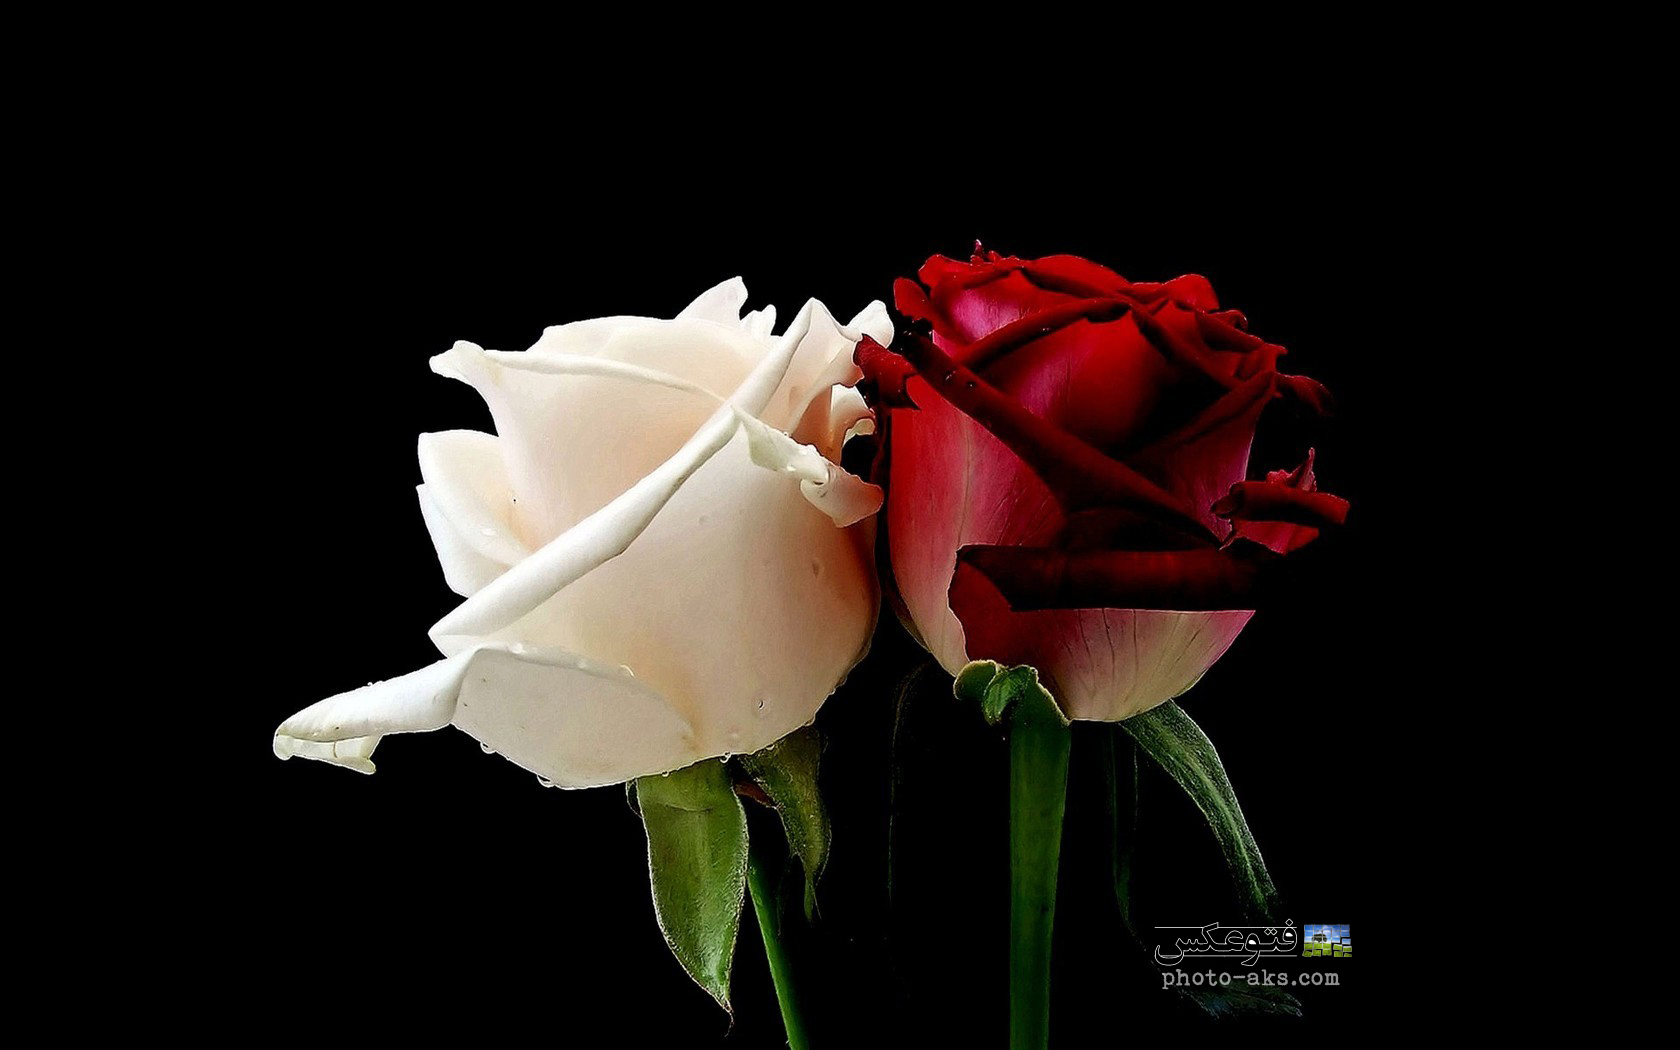 http://pic.photo-aks.com/photo/nature/flowers/rose/large/flowers_white_roses_red_rose.jpg